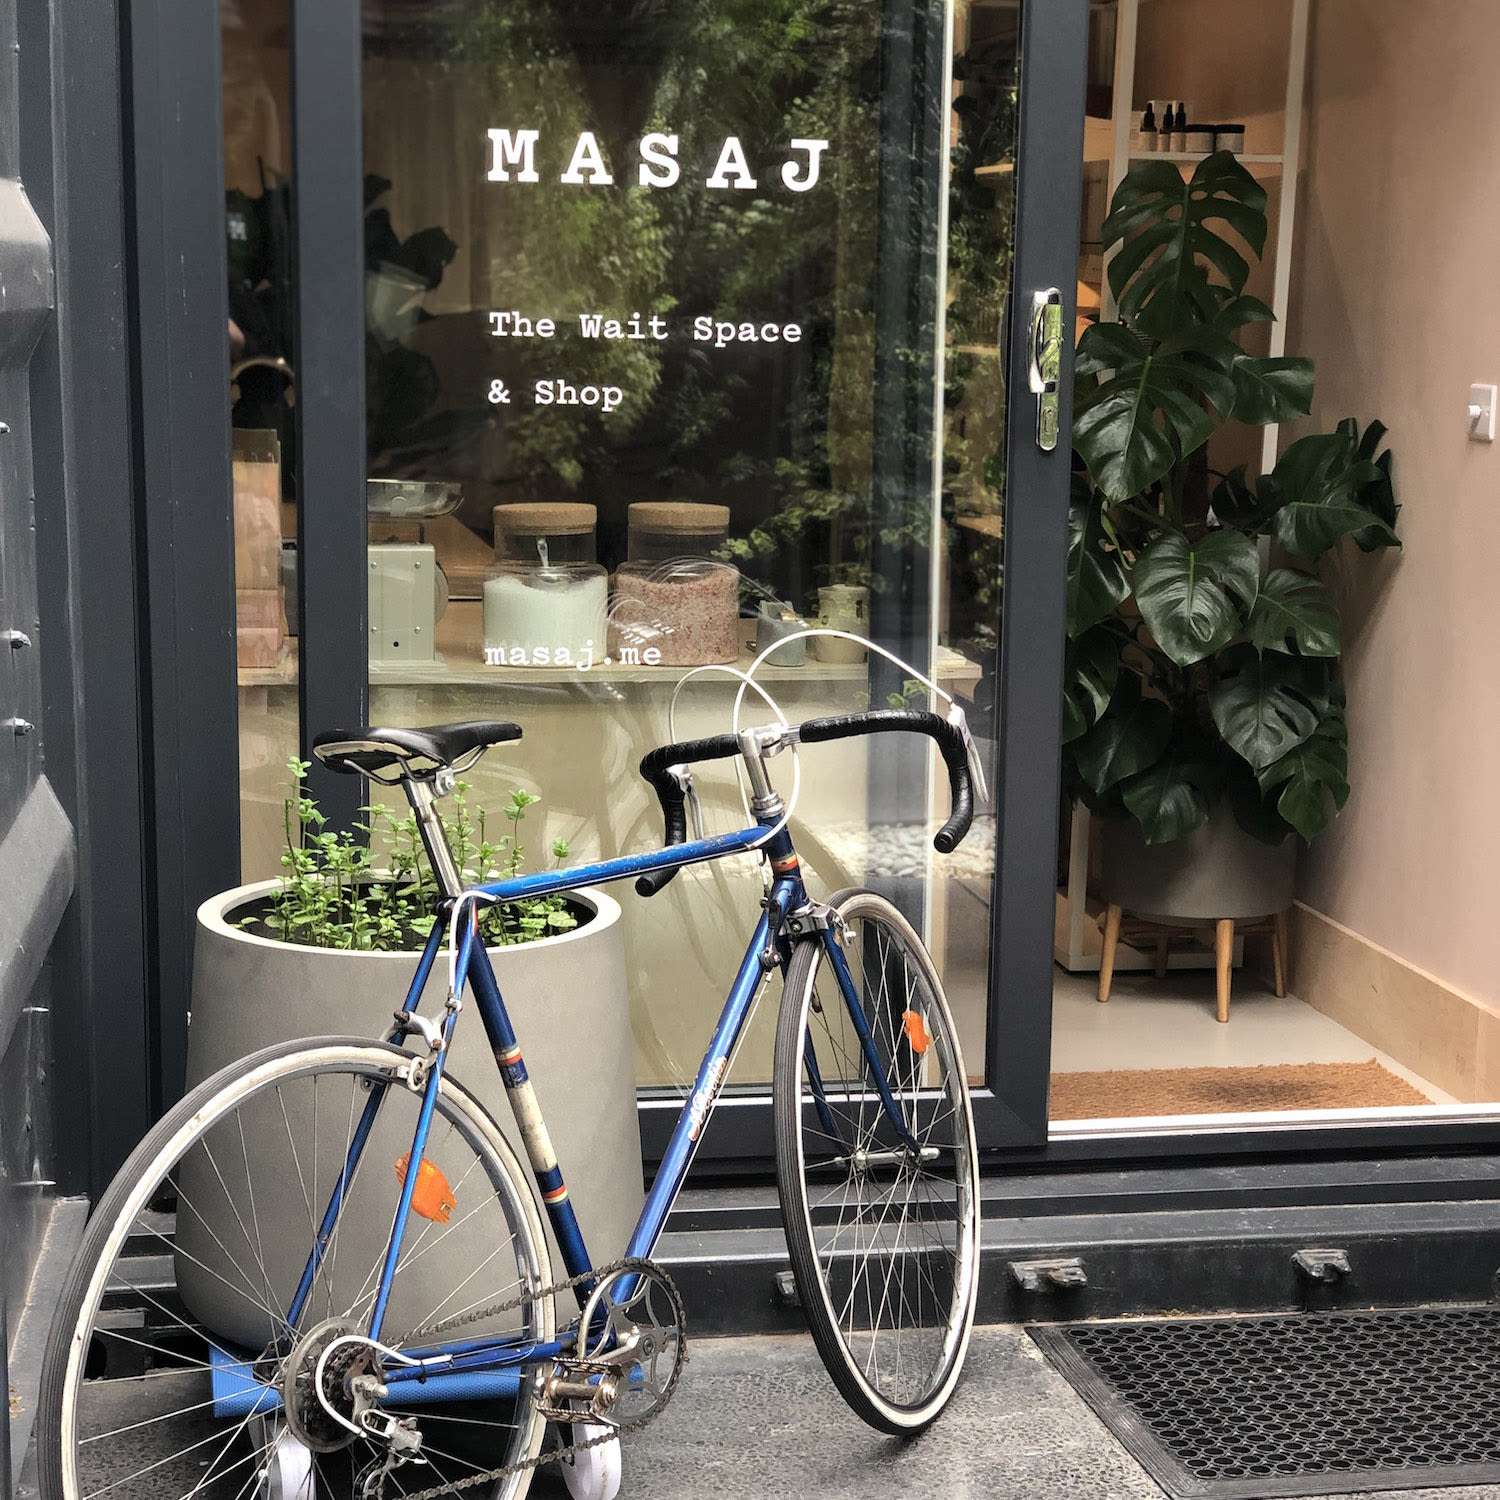 A bike outside the MASAJ studio